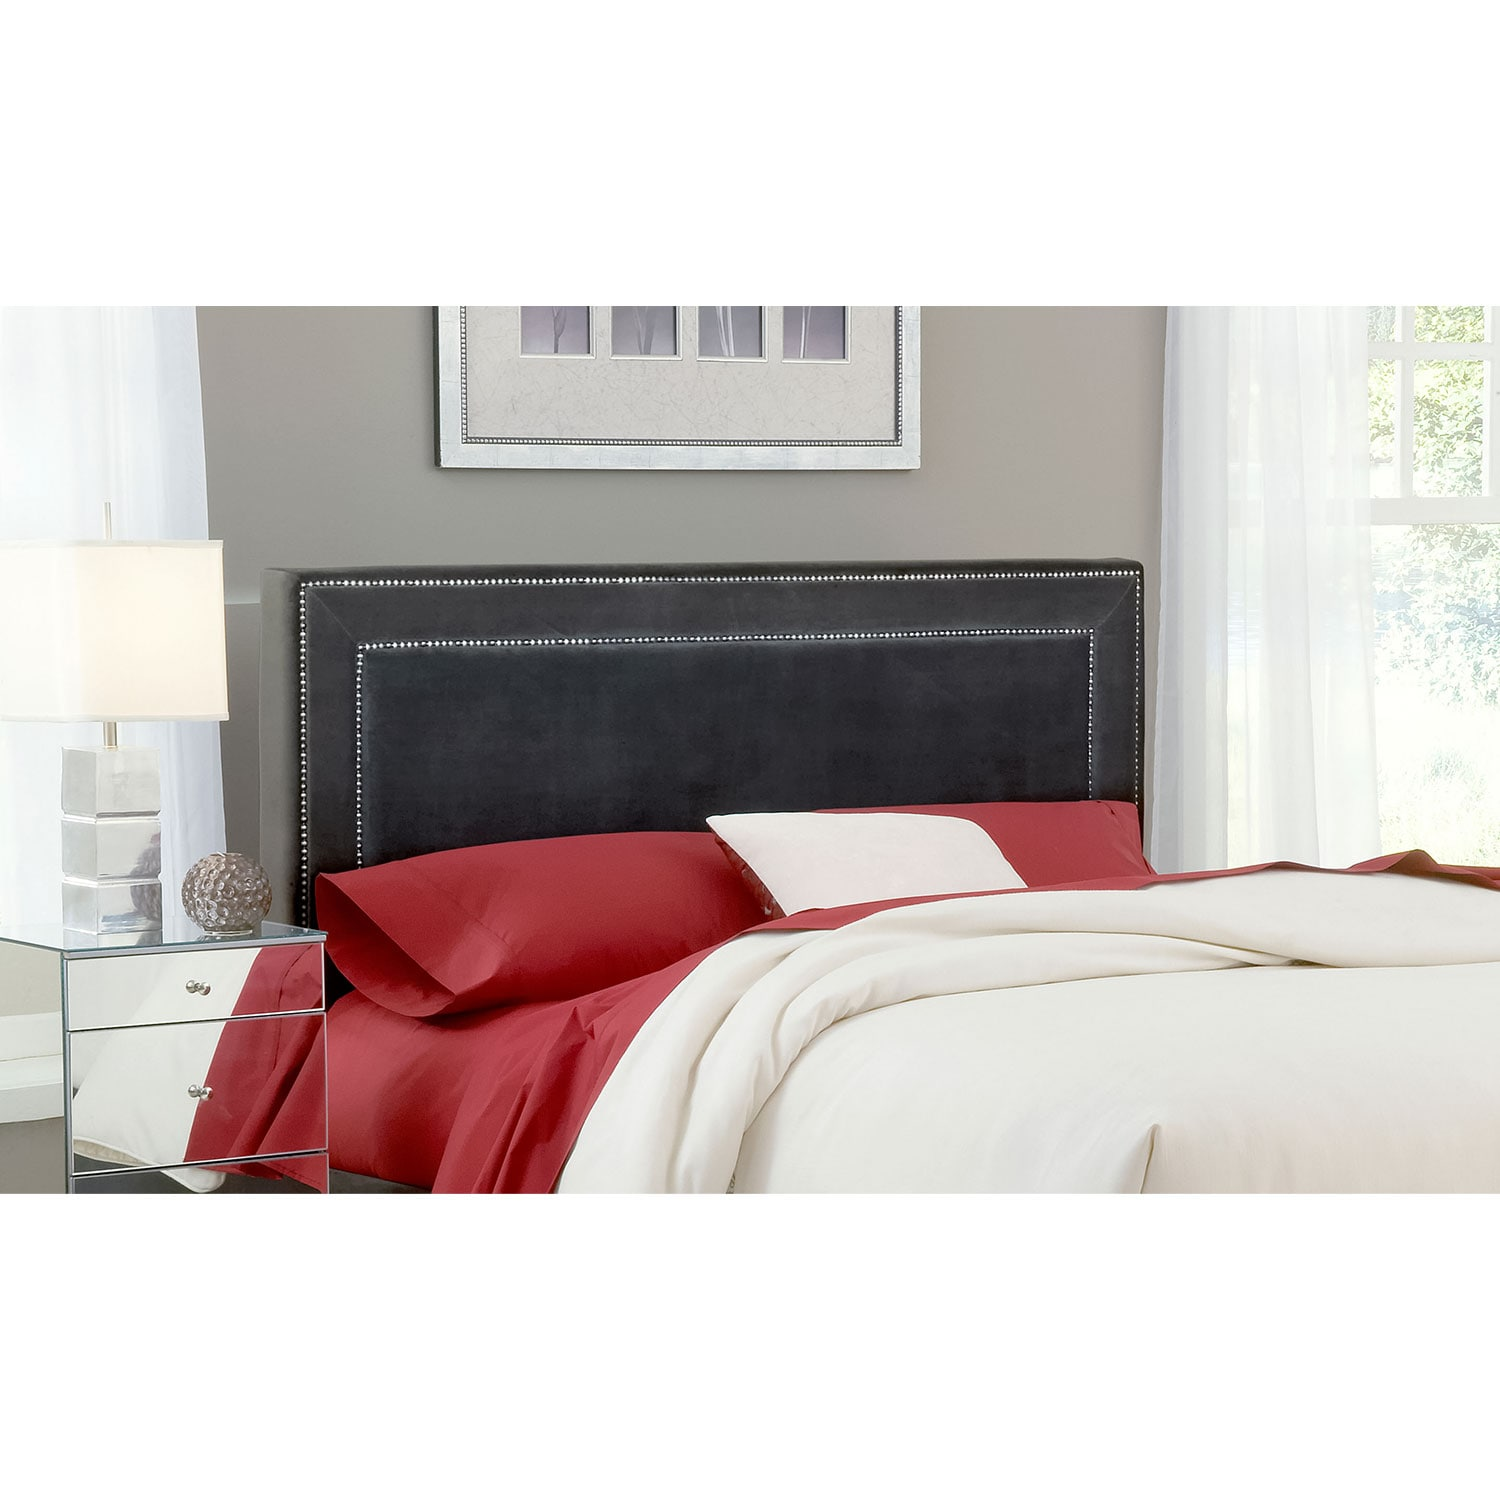 Amber Queen Upholstered Headboard Pewter Value City Furniture And Mattresses